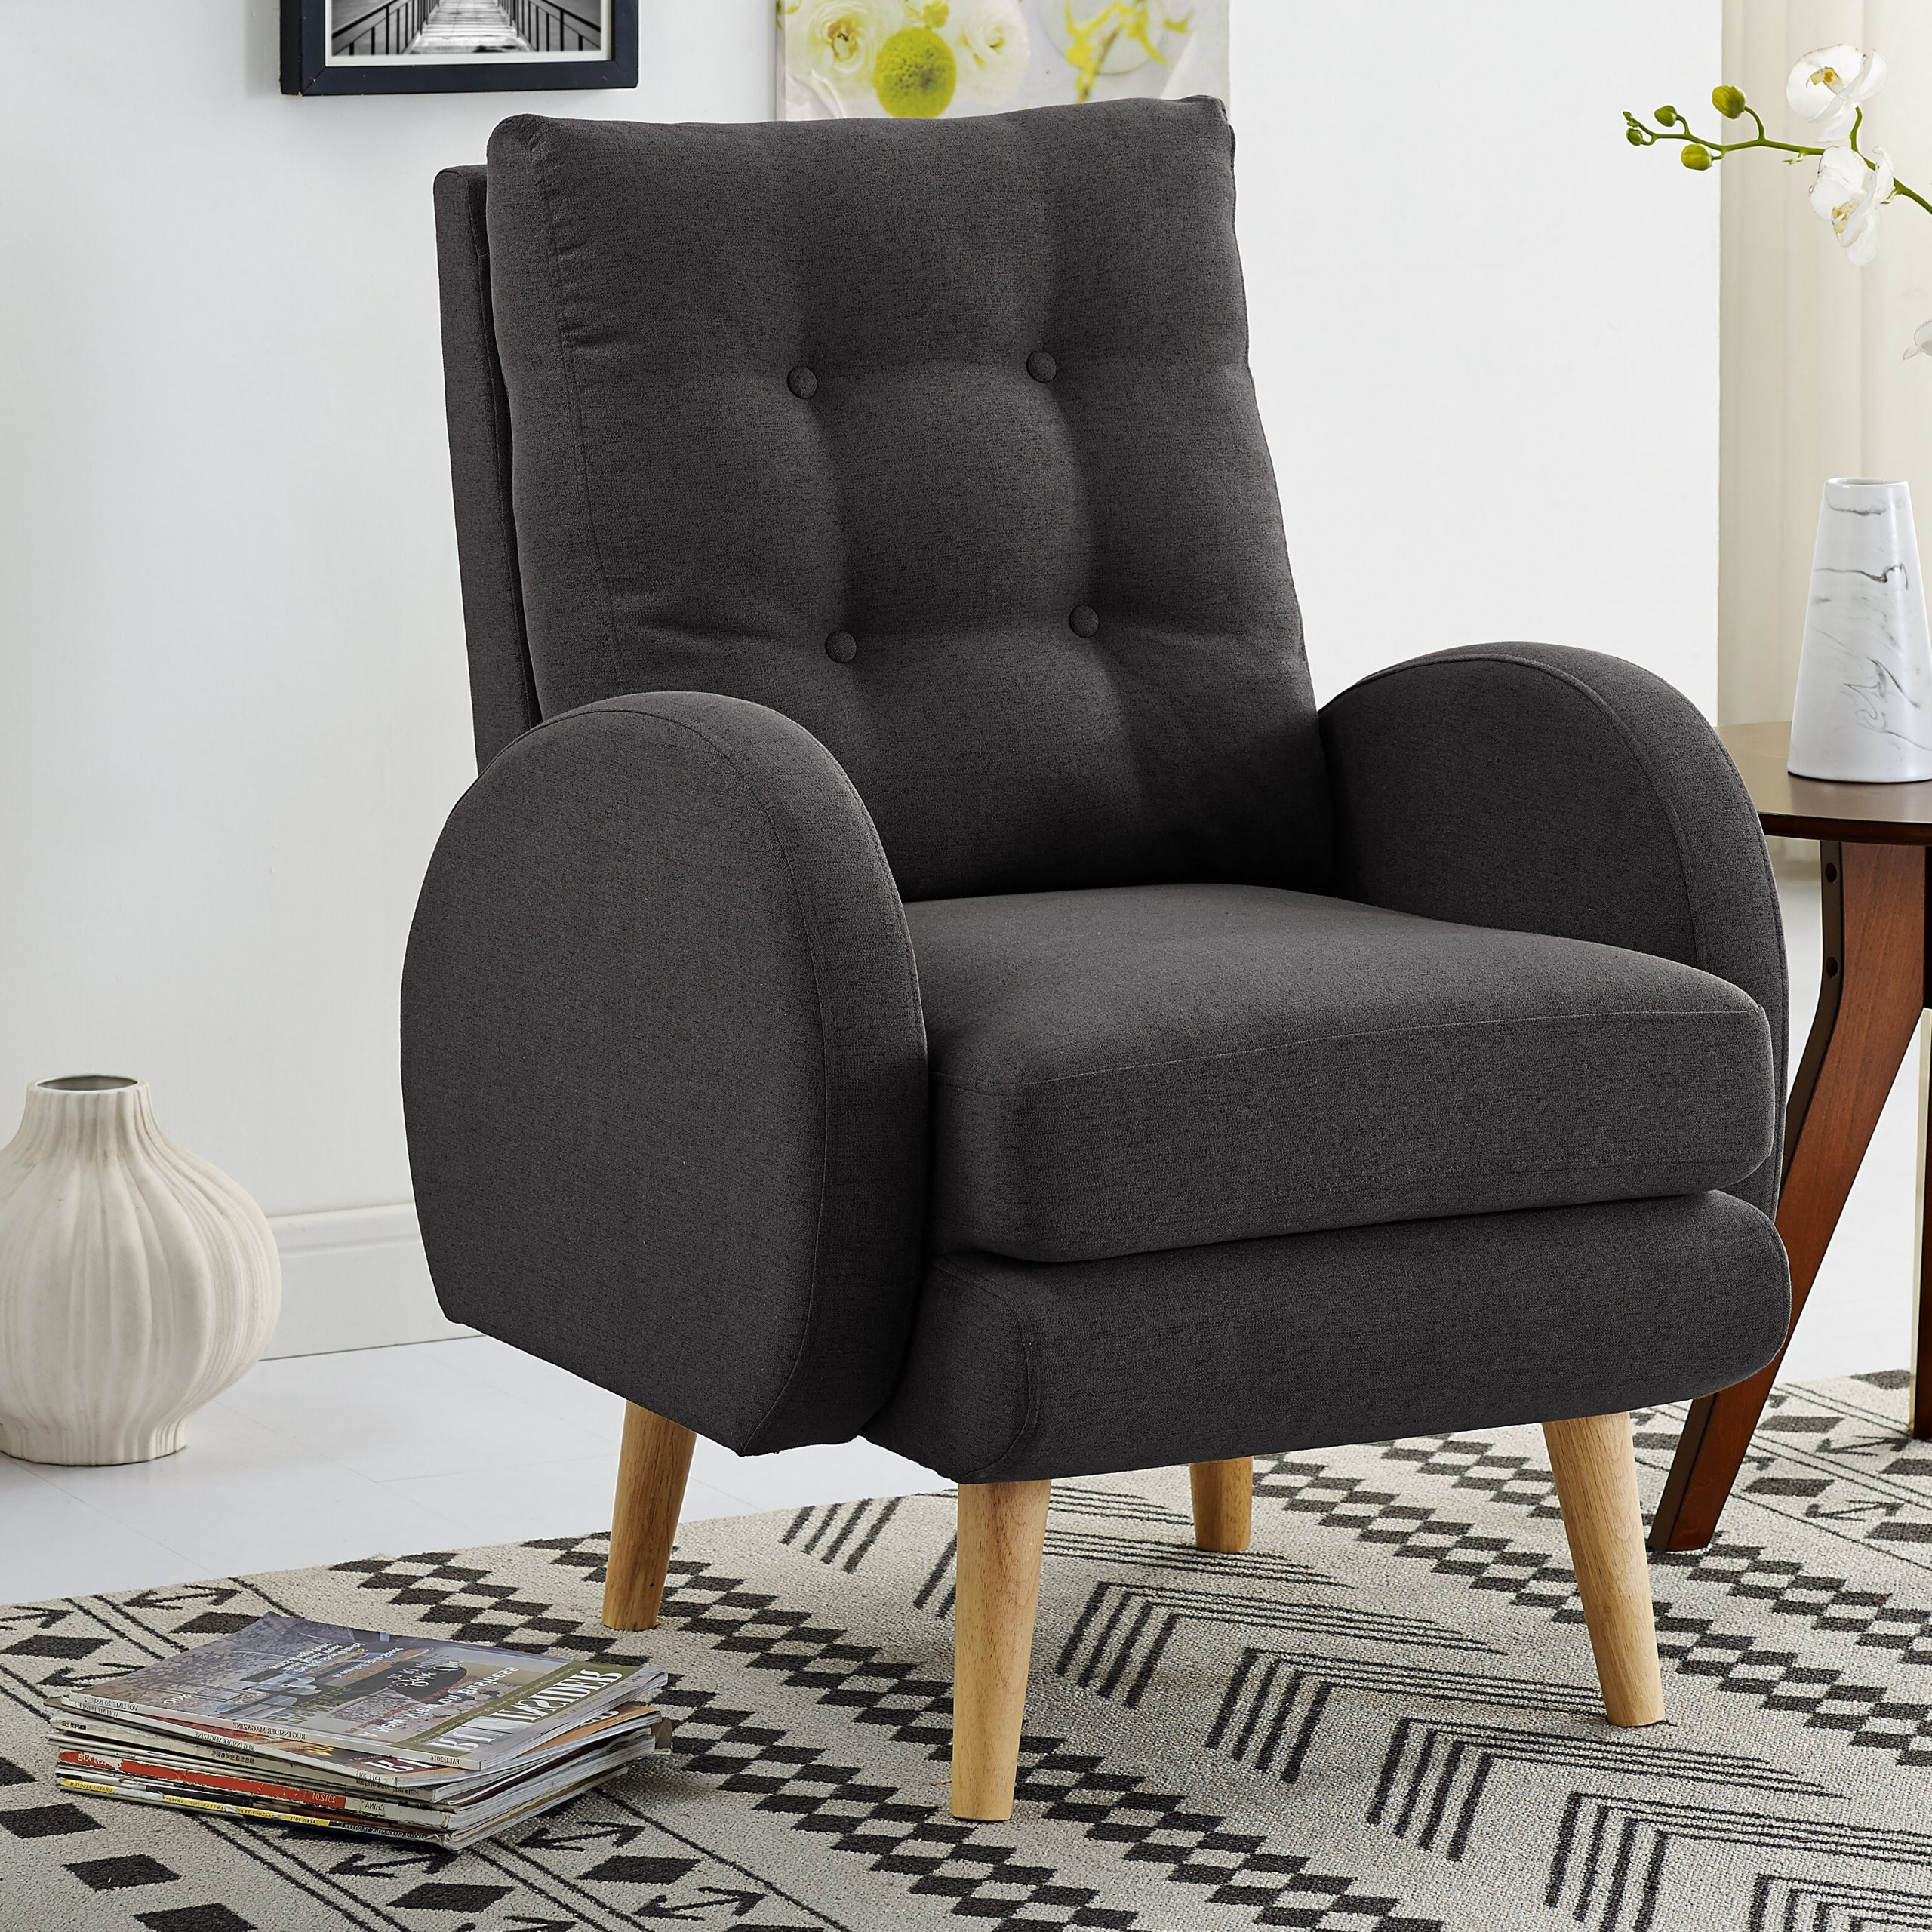 2019 Claudel Polyester Blend Barrel Chairs Intended For Hiltz Armchair (View 11 of 20)